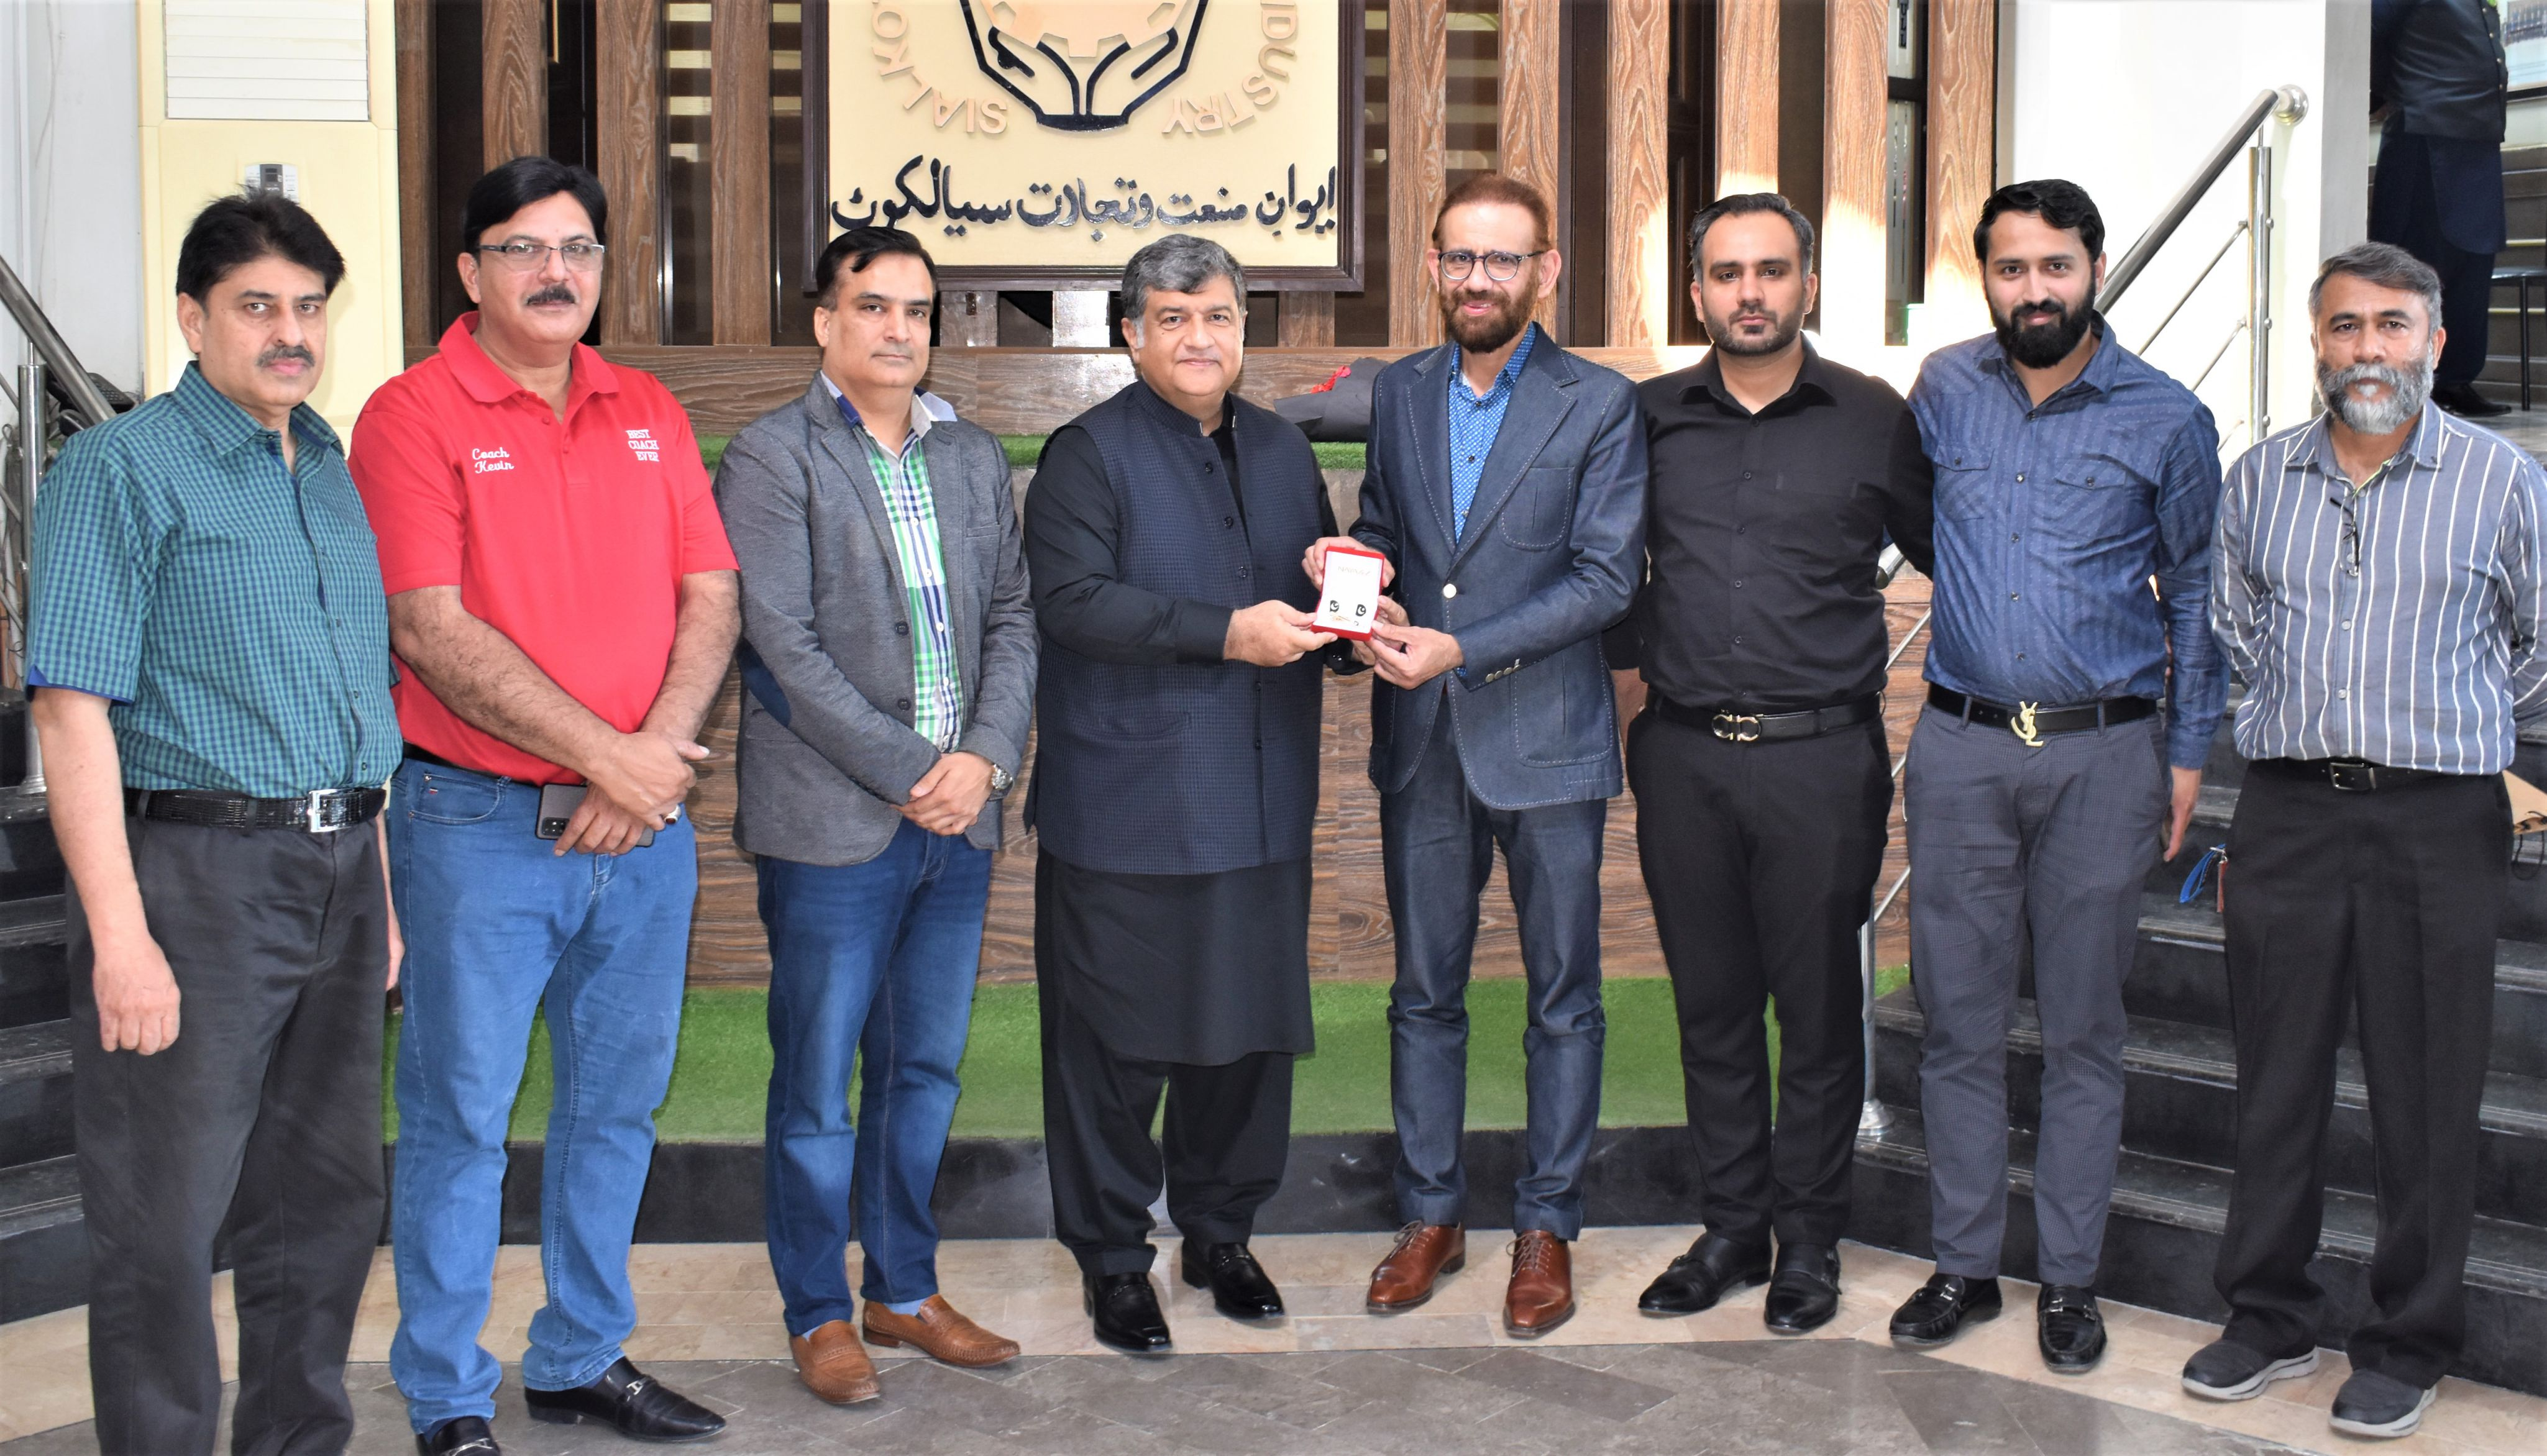 October 26, 2021, Syed Wahaj Siraj, Chief Executive Officer & Co-Founder Nayatel, called on President, Sialkot Chamber of Commerce & Industry for a meeting to discuss avenues of cooperation and promotion of ICT Exports from the Industrial City of Sialkot. President, SCCI lauded the role of Nayatel in spearheading the tech revolution in Pakistan by providing cutting-edge Internet and Cloud and scores of other ICT services to the industry and the consumer market. The President Chamber said that Pakistan was making strides in domains of Software Exports, E-Commerce, and Freelancing and that the tech industry owed a great deal to high-speed internet providers like Nayatel. On the occasion, Mr. Akbar shared his vision for a bustling IT Industry in Sialkot apart from already established sectors. He was of the view that the talent of the youth of Sialkot should be channelized in this domain and that the IT graduates of the city should be given a platform to exploit the tremendous potential of the global IT market. The President solicited support from Nayatel Chief in realizing the vision and building necessary infrastructure in Sialkot.  Mr. Wahaj Siraj appreciated the industrial dynamism of Sialkot and said that he had a profound attachment with the city because of Dr. Allama Iqbal and the legacy of producing entrepreneurial laurels. He said that Sialkot had become a global phenomenon thanks to its hardworking craftsmen and business leaders working in various sectors. He also acknowledged the self-reliance of the people of Sialkot which had led them to successfully execute mega projects like Airport, Dry port, and Airline. Mr. Siraj stressed that the model of Sialkot should be replicated across Pakistan. During the meeting, Mr. Wahaj Siraj announced that Nayatel would soon be launching in Sialkot with cutting-edge services for both the Corporate and Consumer market. He also mentioned offering tailor-made services for SMEs of Sialkot including secured email servers, cloud-